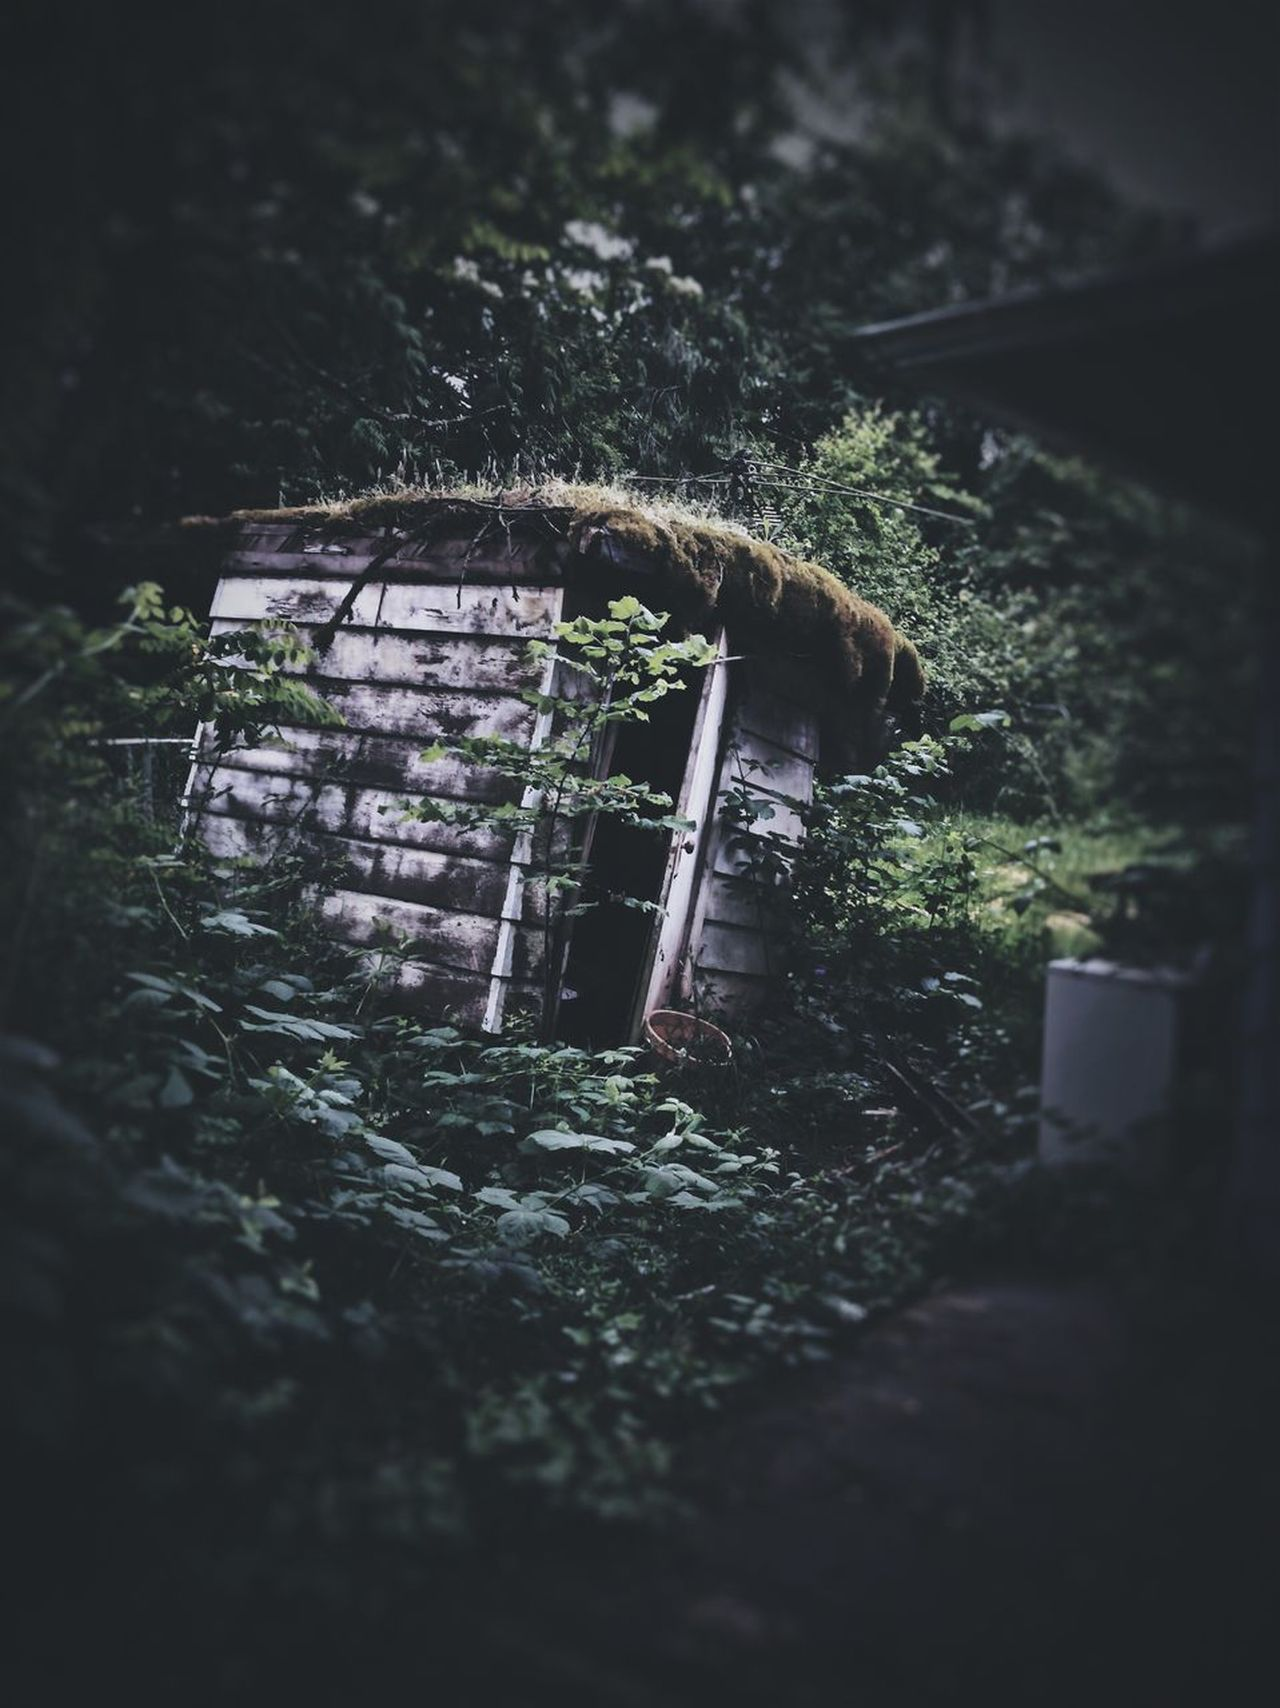 Creepy Places Outdoors Nature Built Structure Over Grown Grass Yard Sinking Architecture Tree Landscape Creepy Atmoshpere Creepy Creepy Building